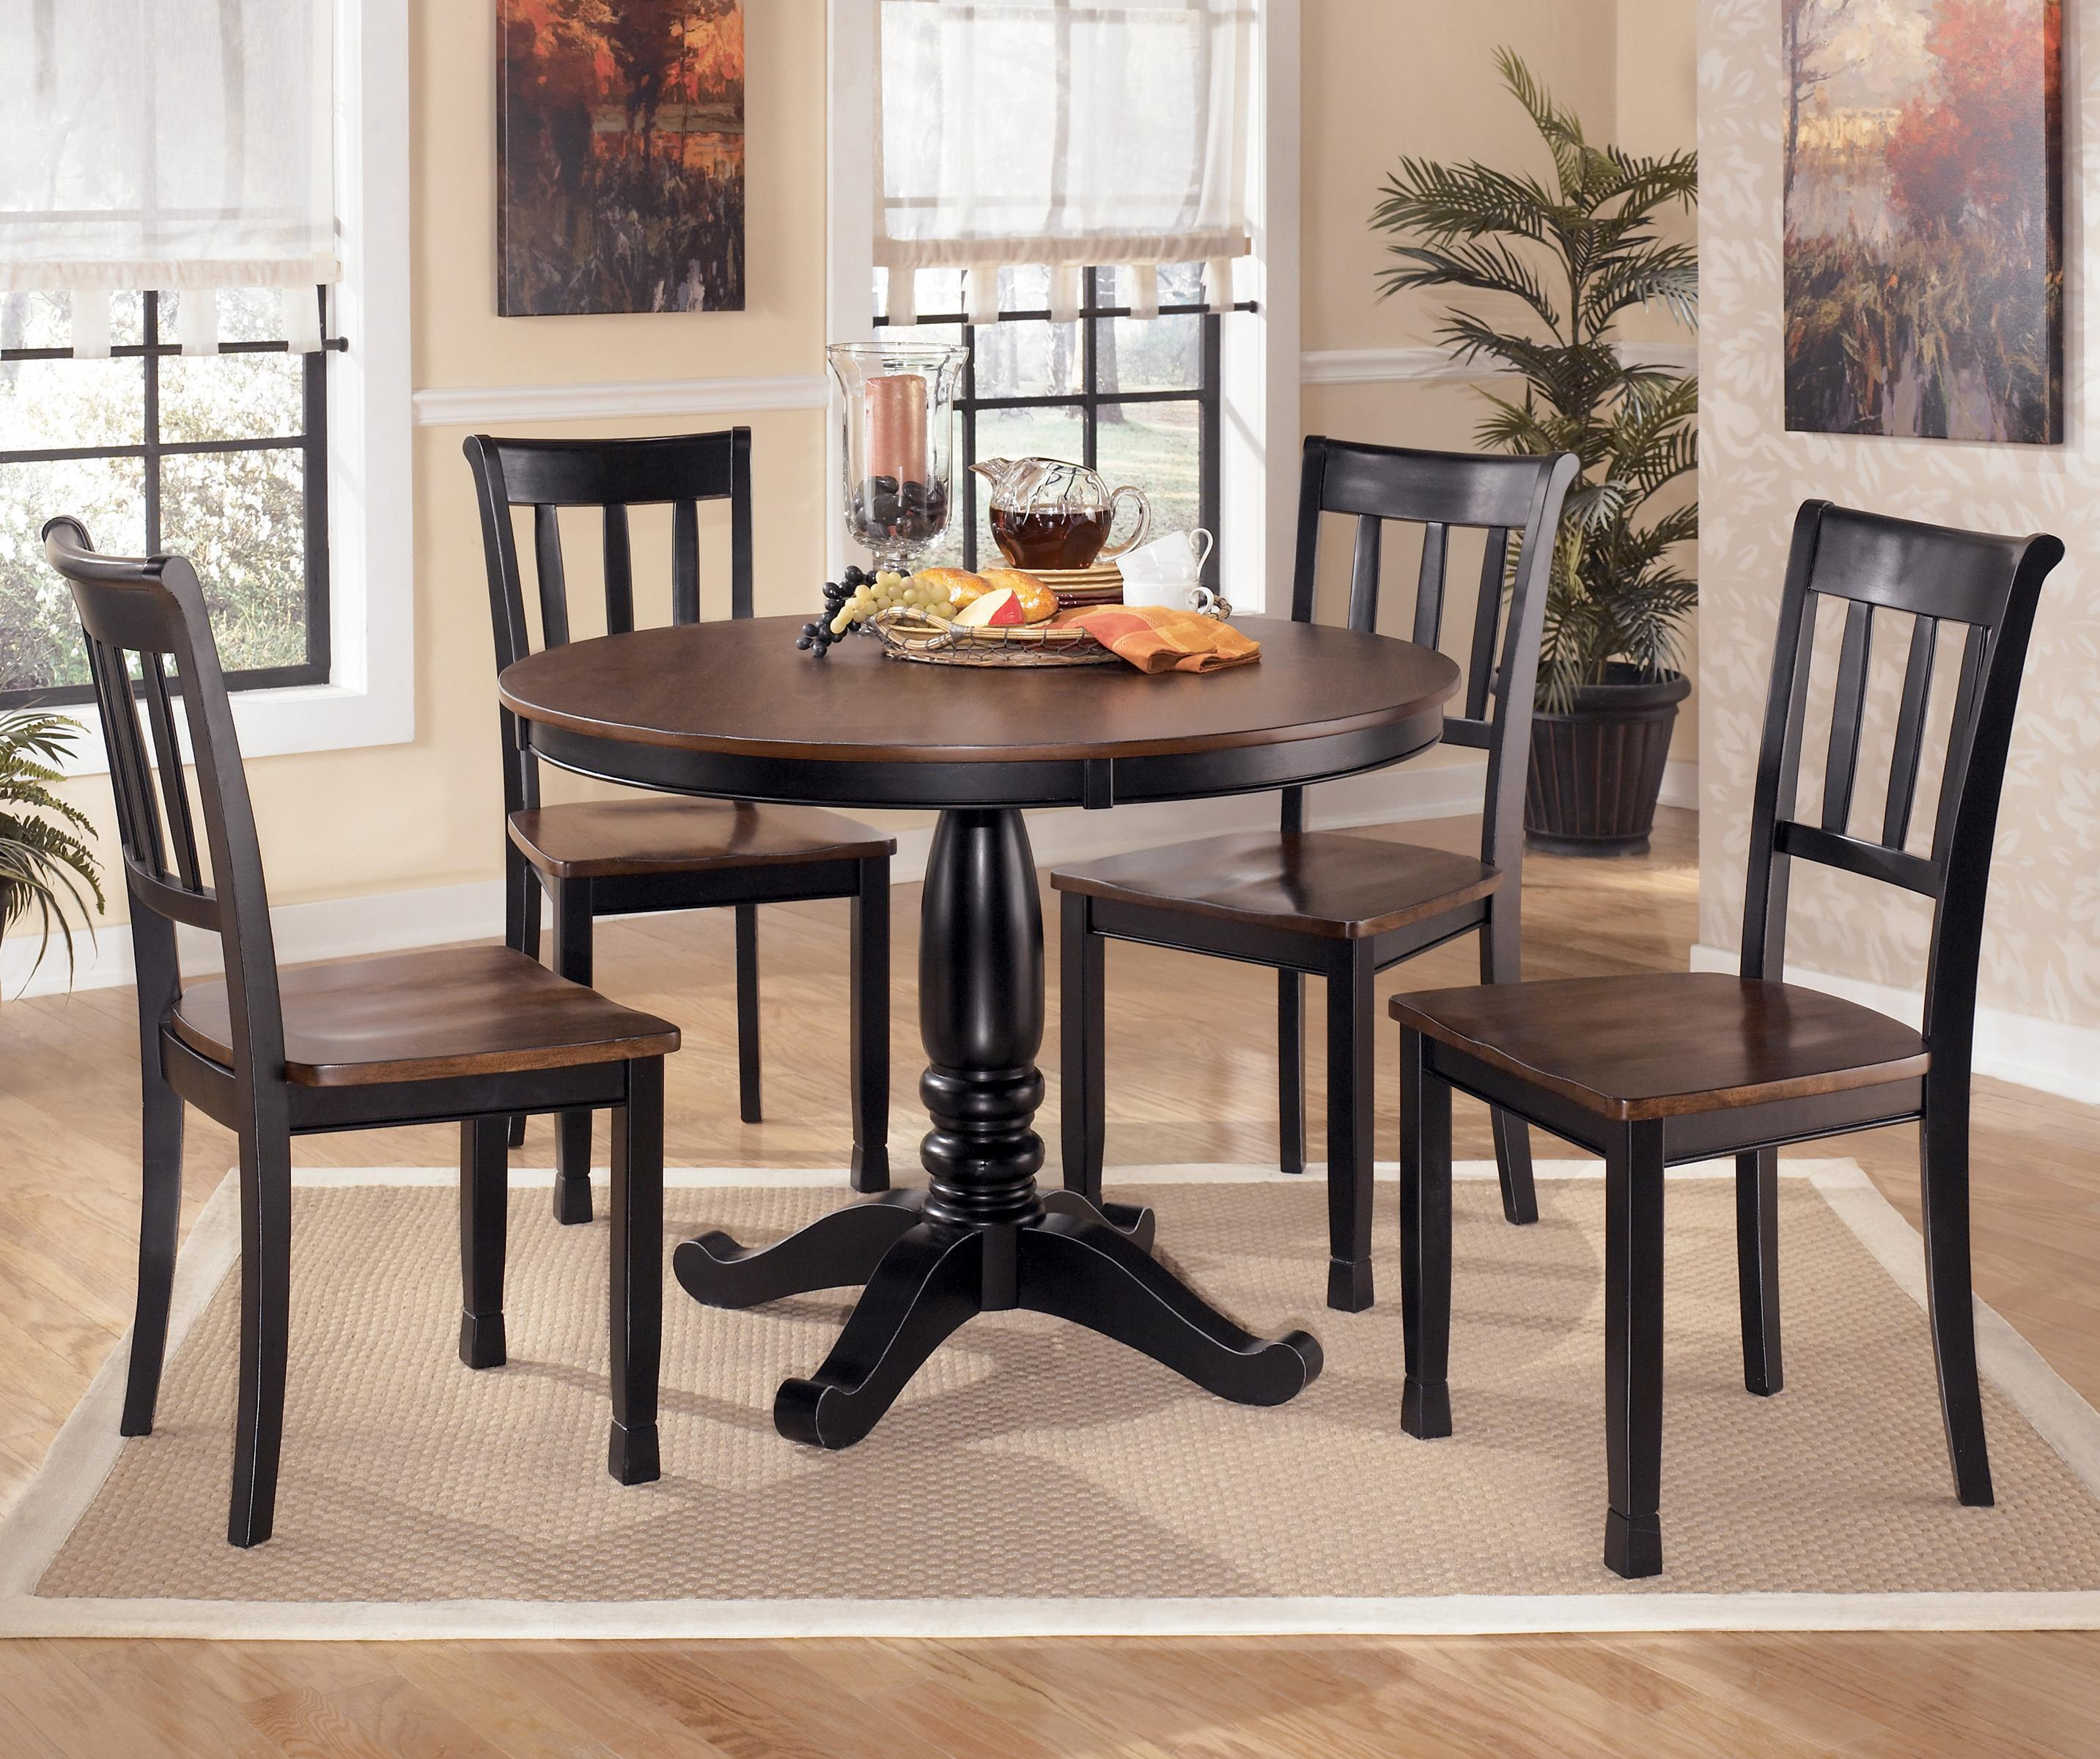 Signature Design by Ashley Owingsville 5-Piece Round Dining Table Set - Item Number: D580-15B+15T+4x02